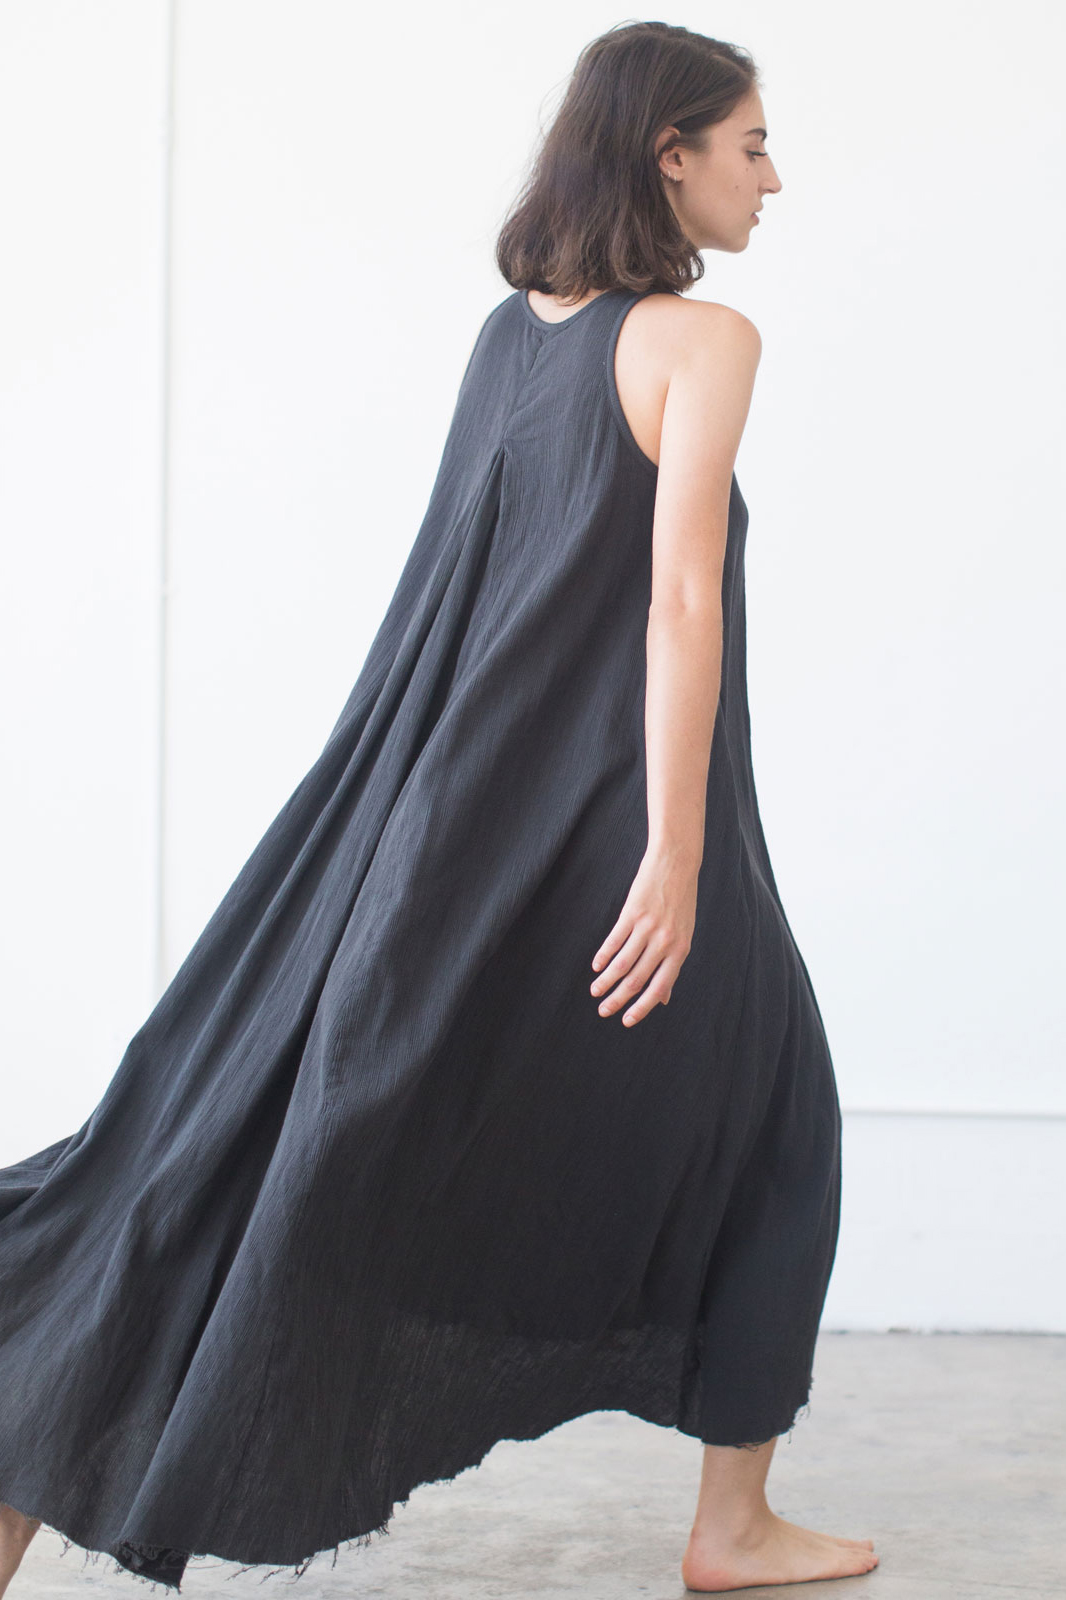 Black Crane – Clothing made in LA, inspired by Japanese culture